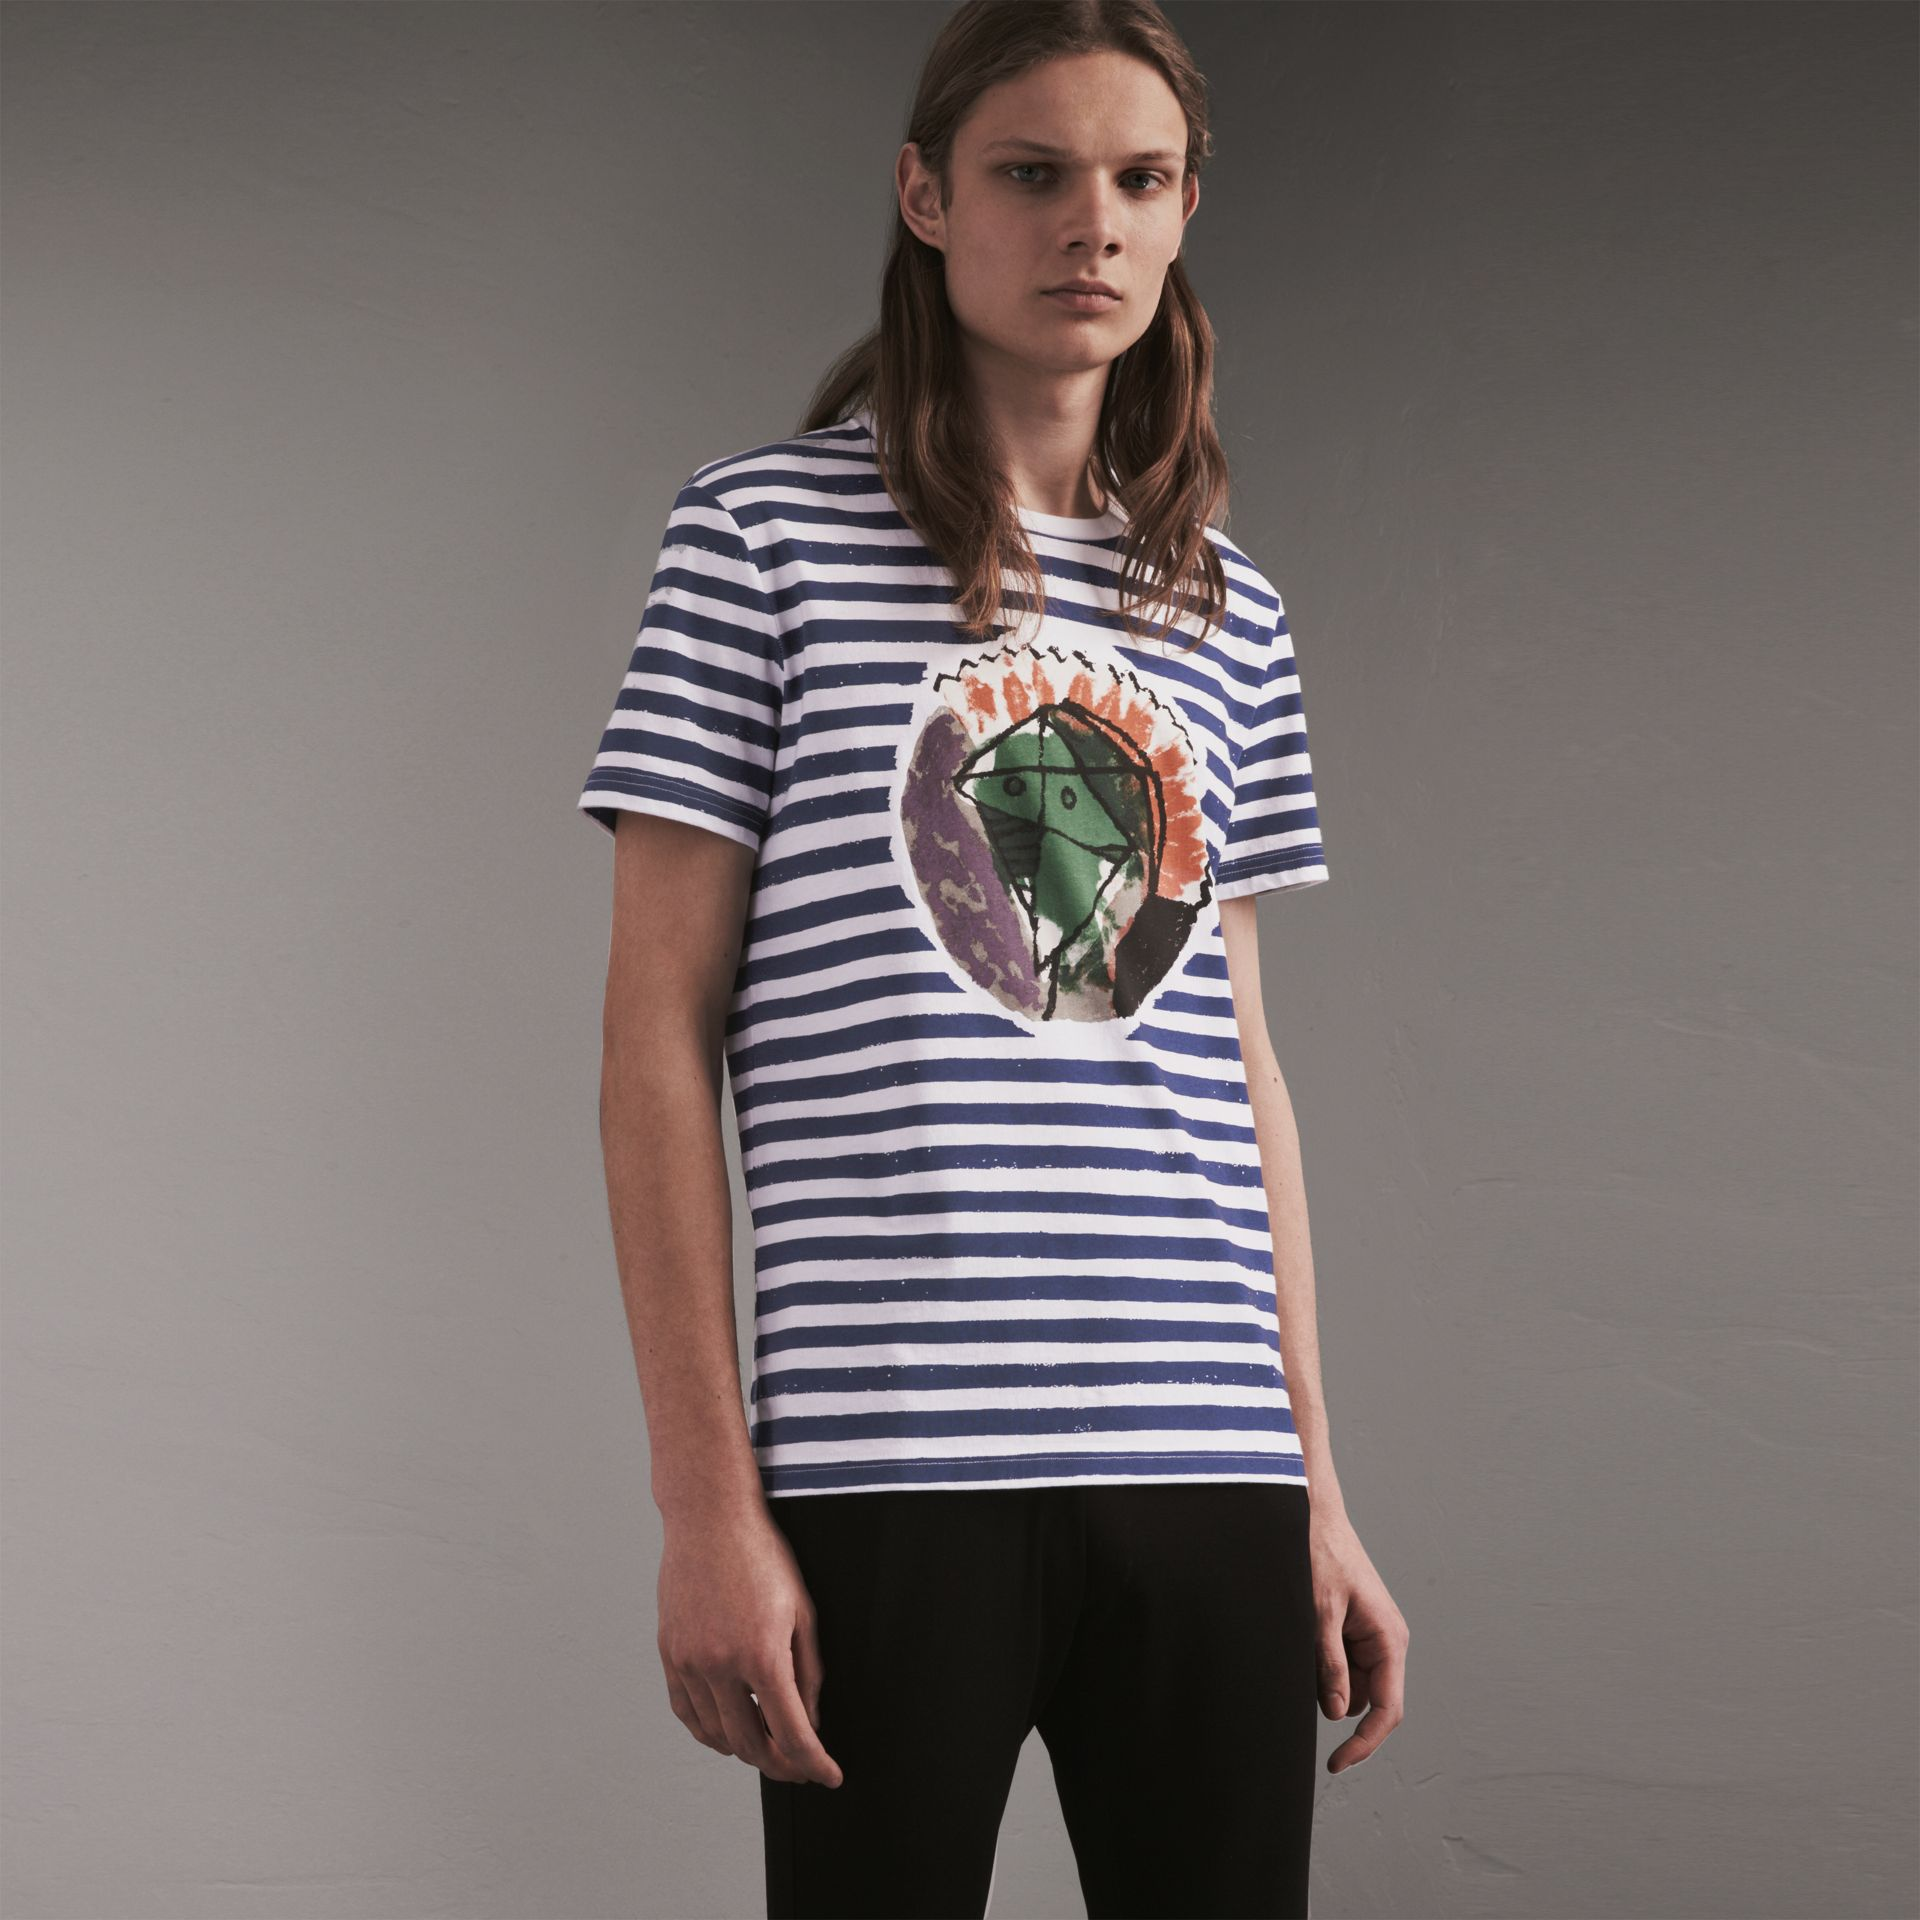 Pallas Heads Print Striped Cotton T-shirt in White - Men | Burberry - gallery image 1